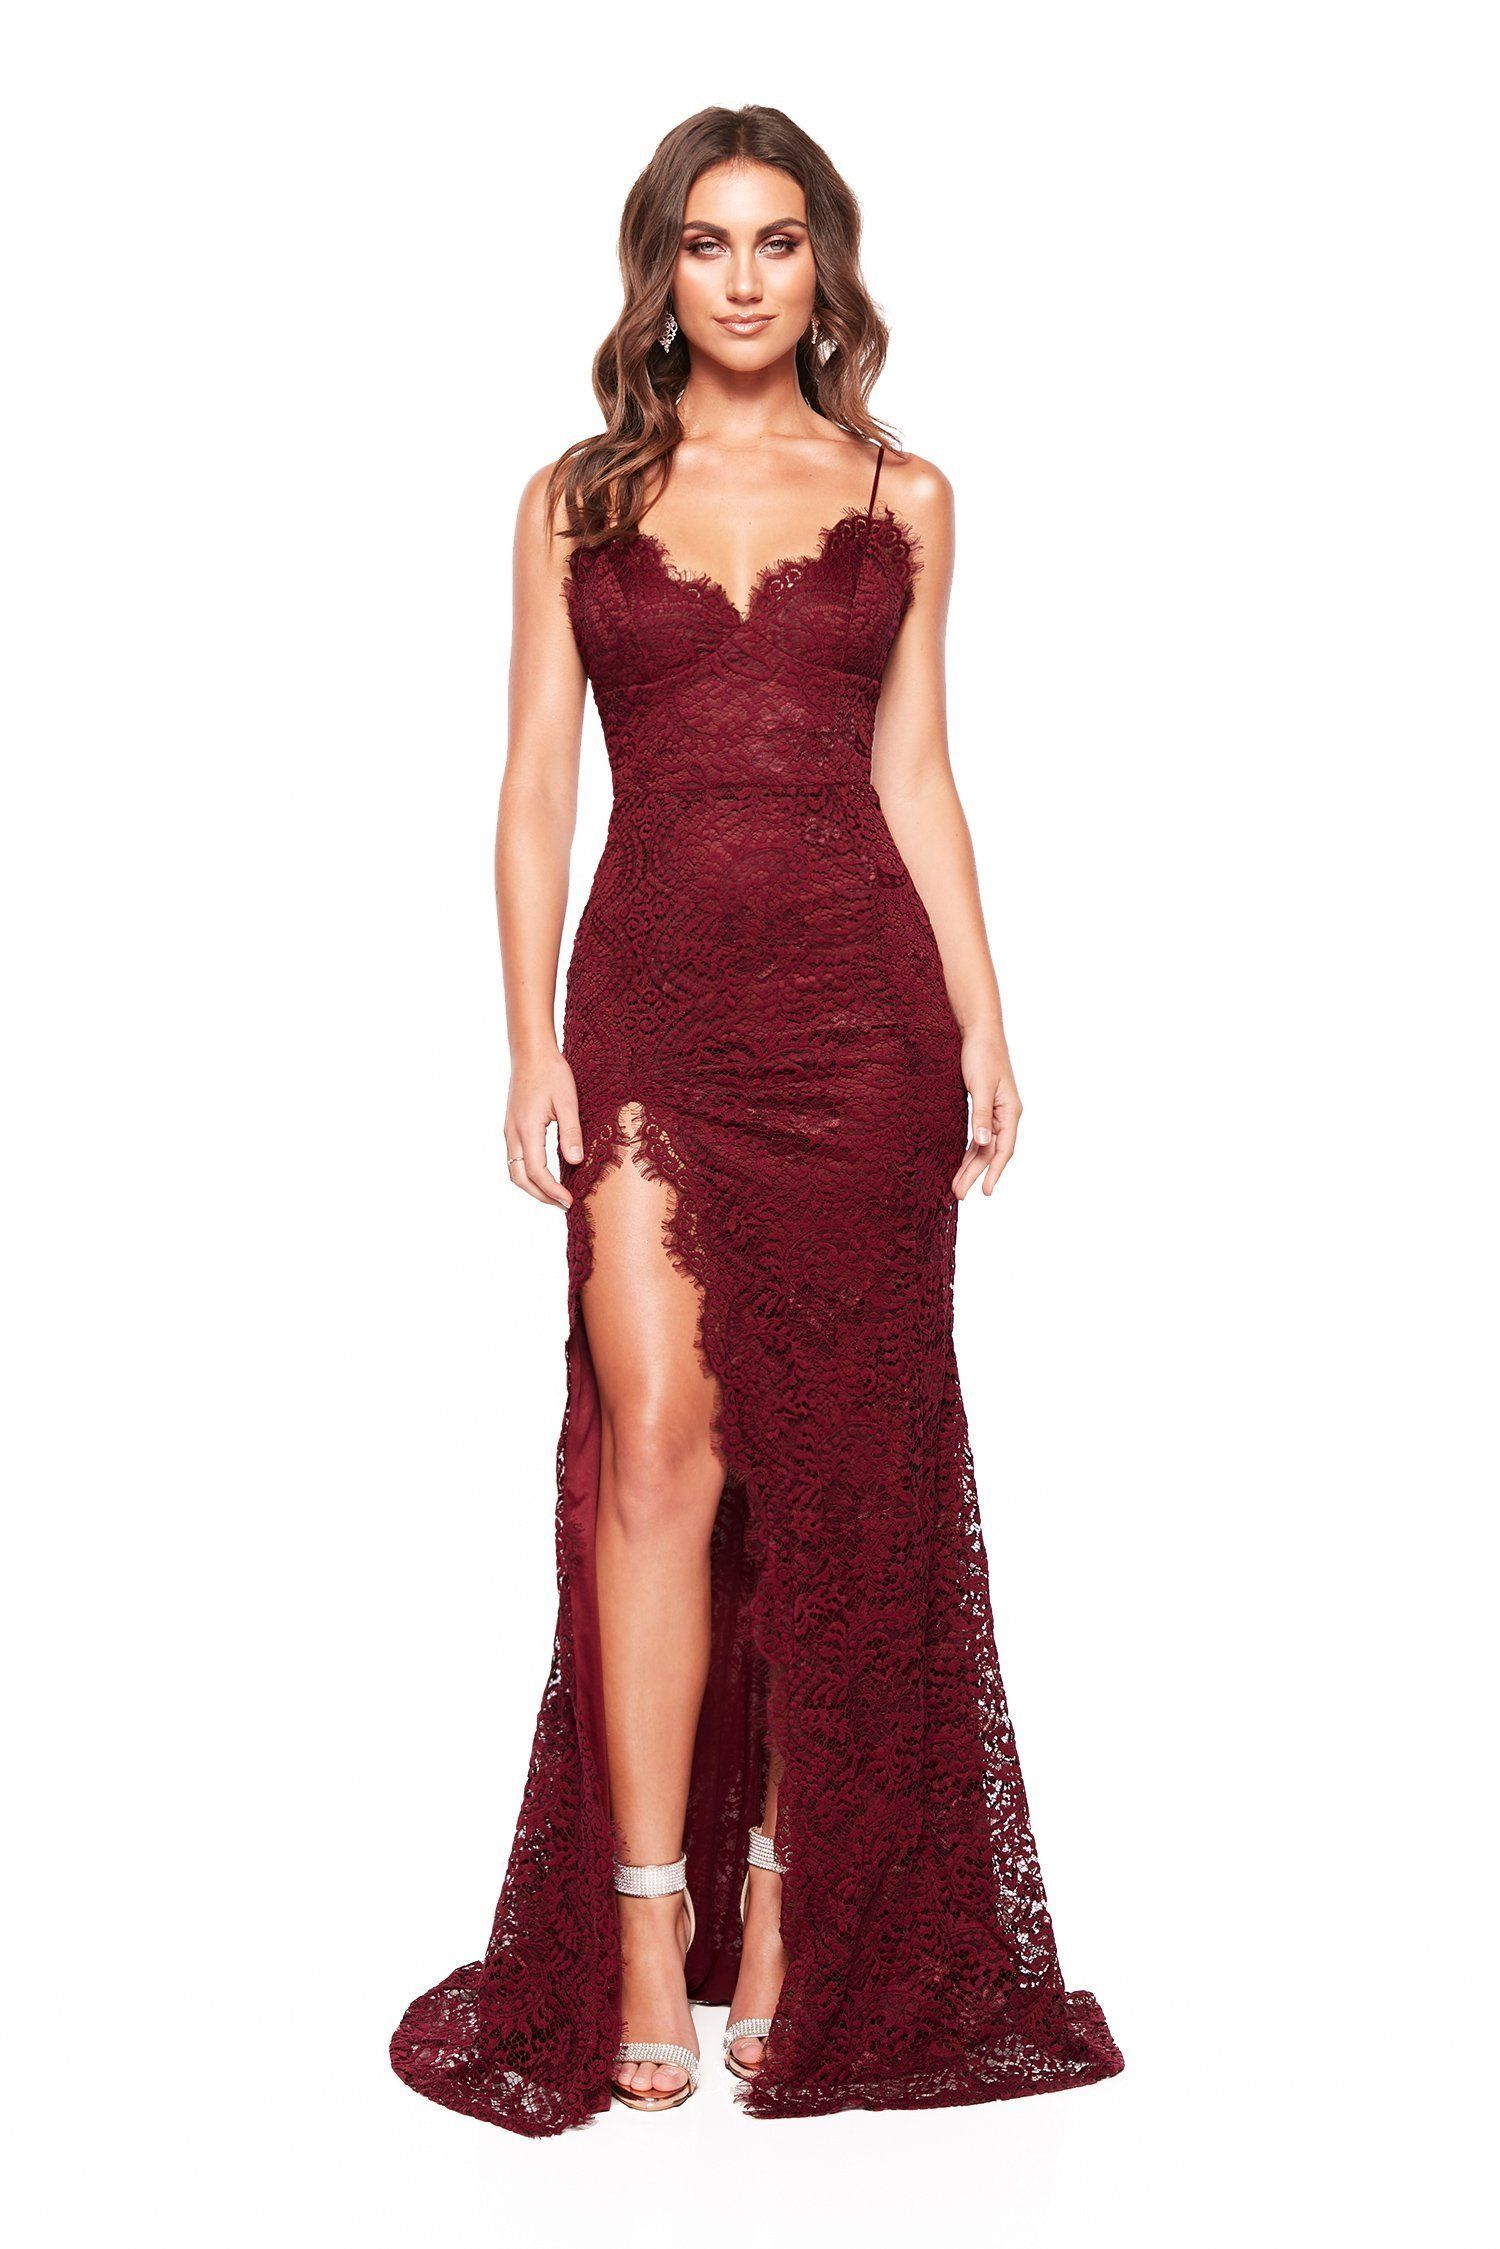 323f38f7004a6e Layali - Sleeveless Plum Lace Gown with Side Split, V Neck & Open Back –  A&N Luxe Label